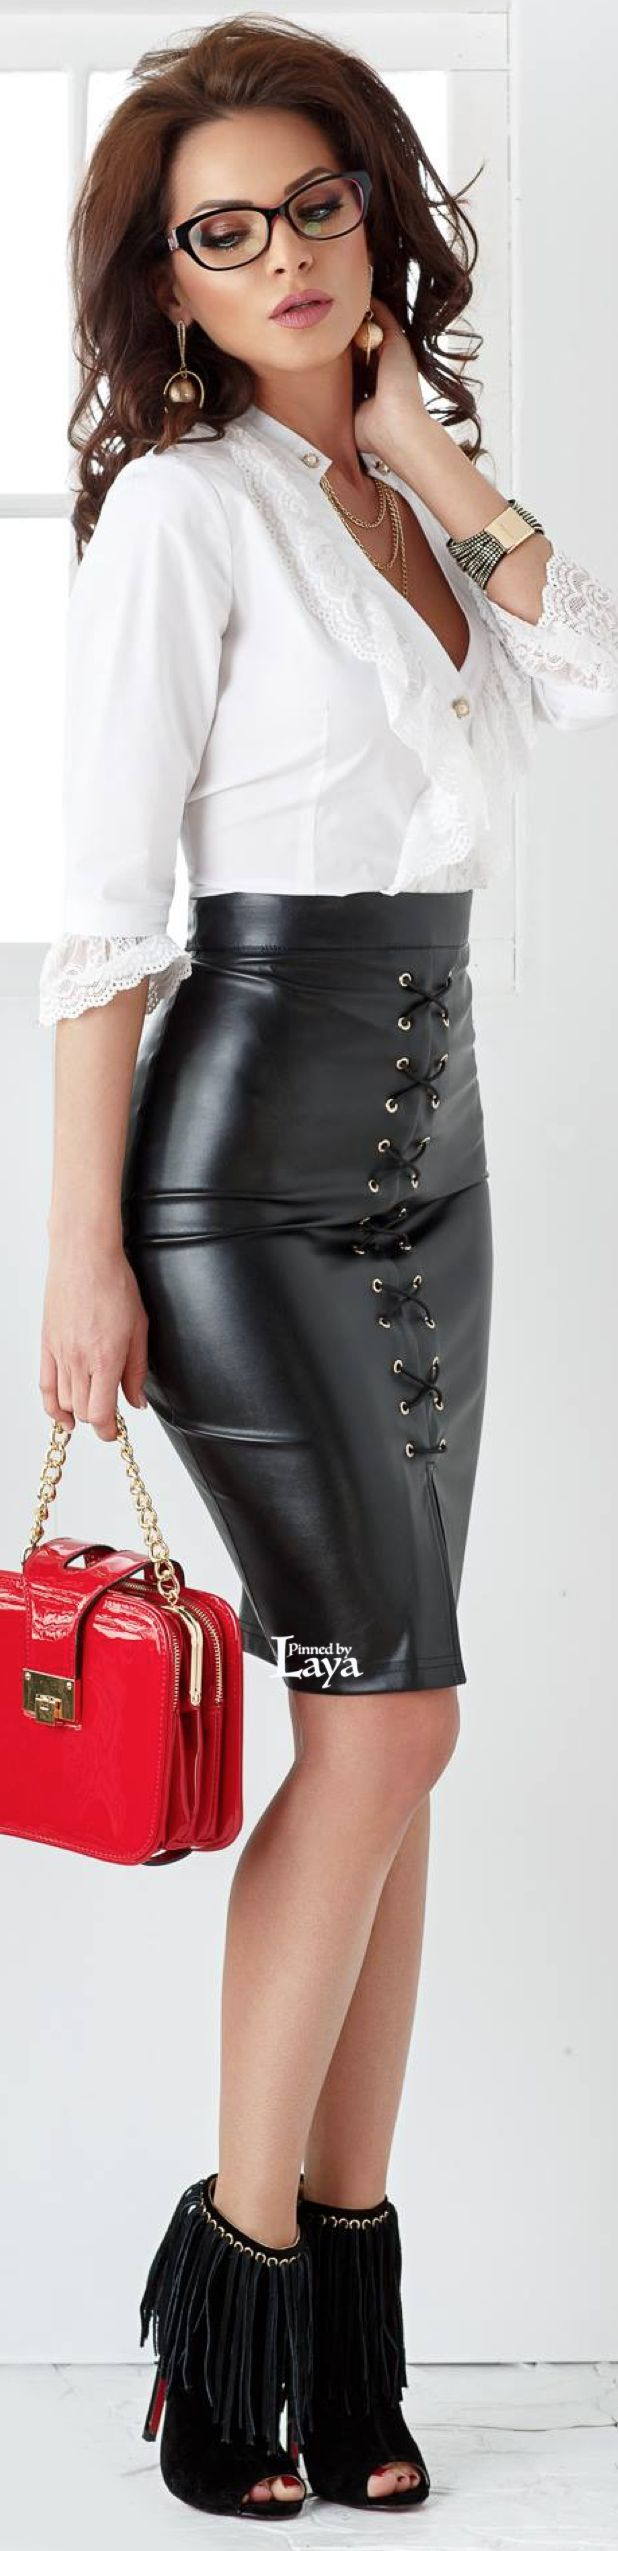 Black leather skirt white blouse pictures - H M offers fashion and ...